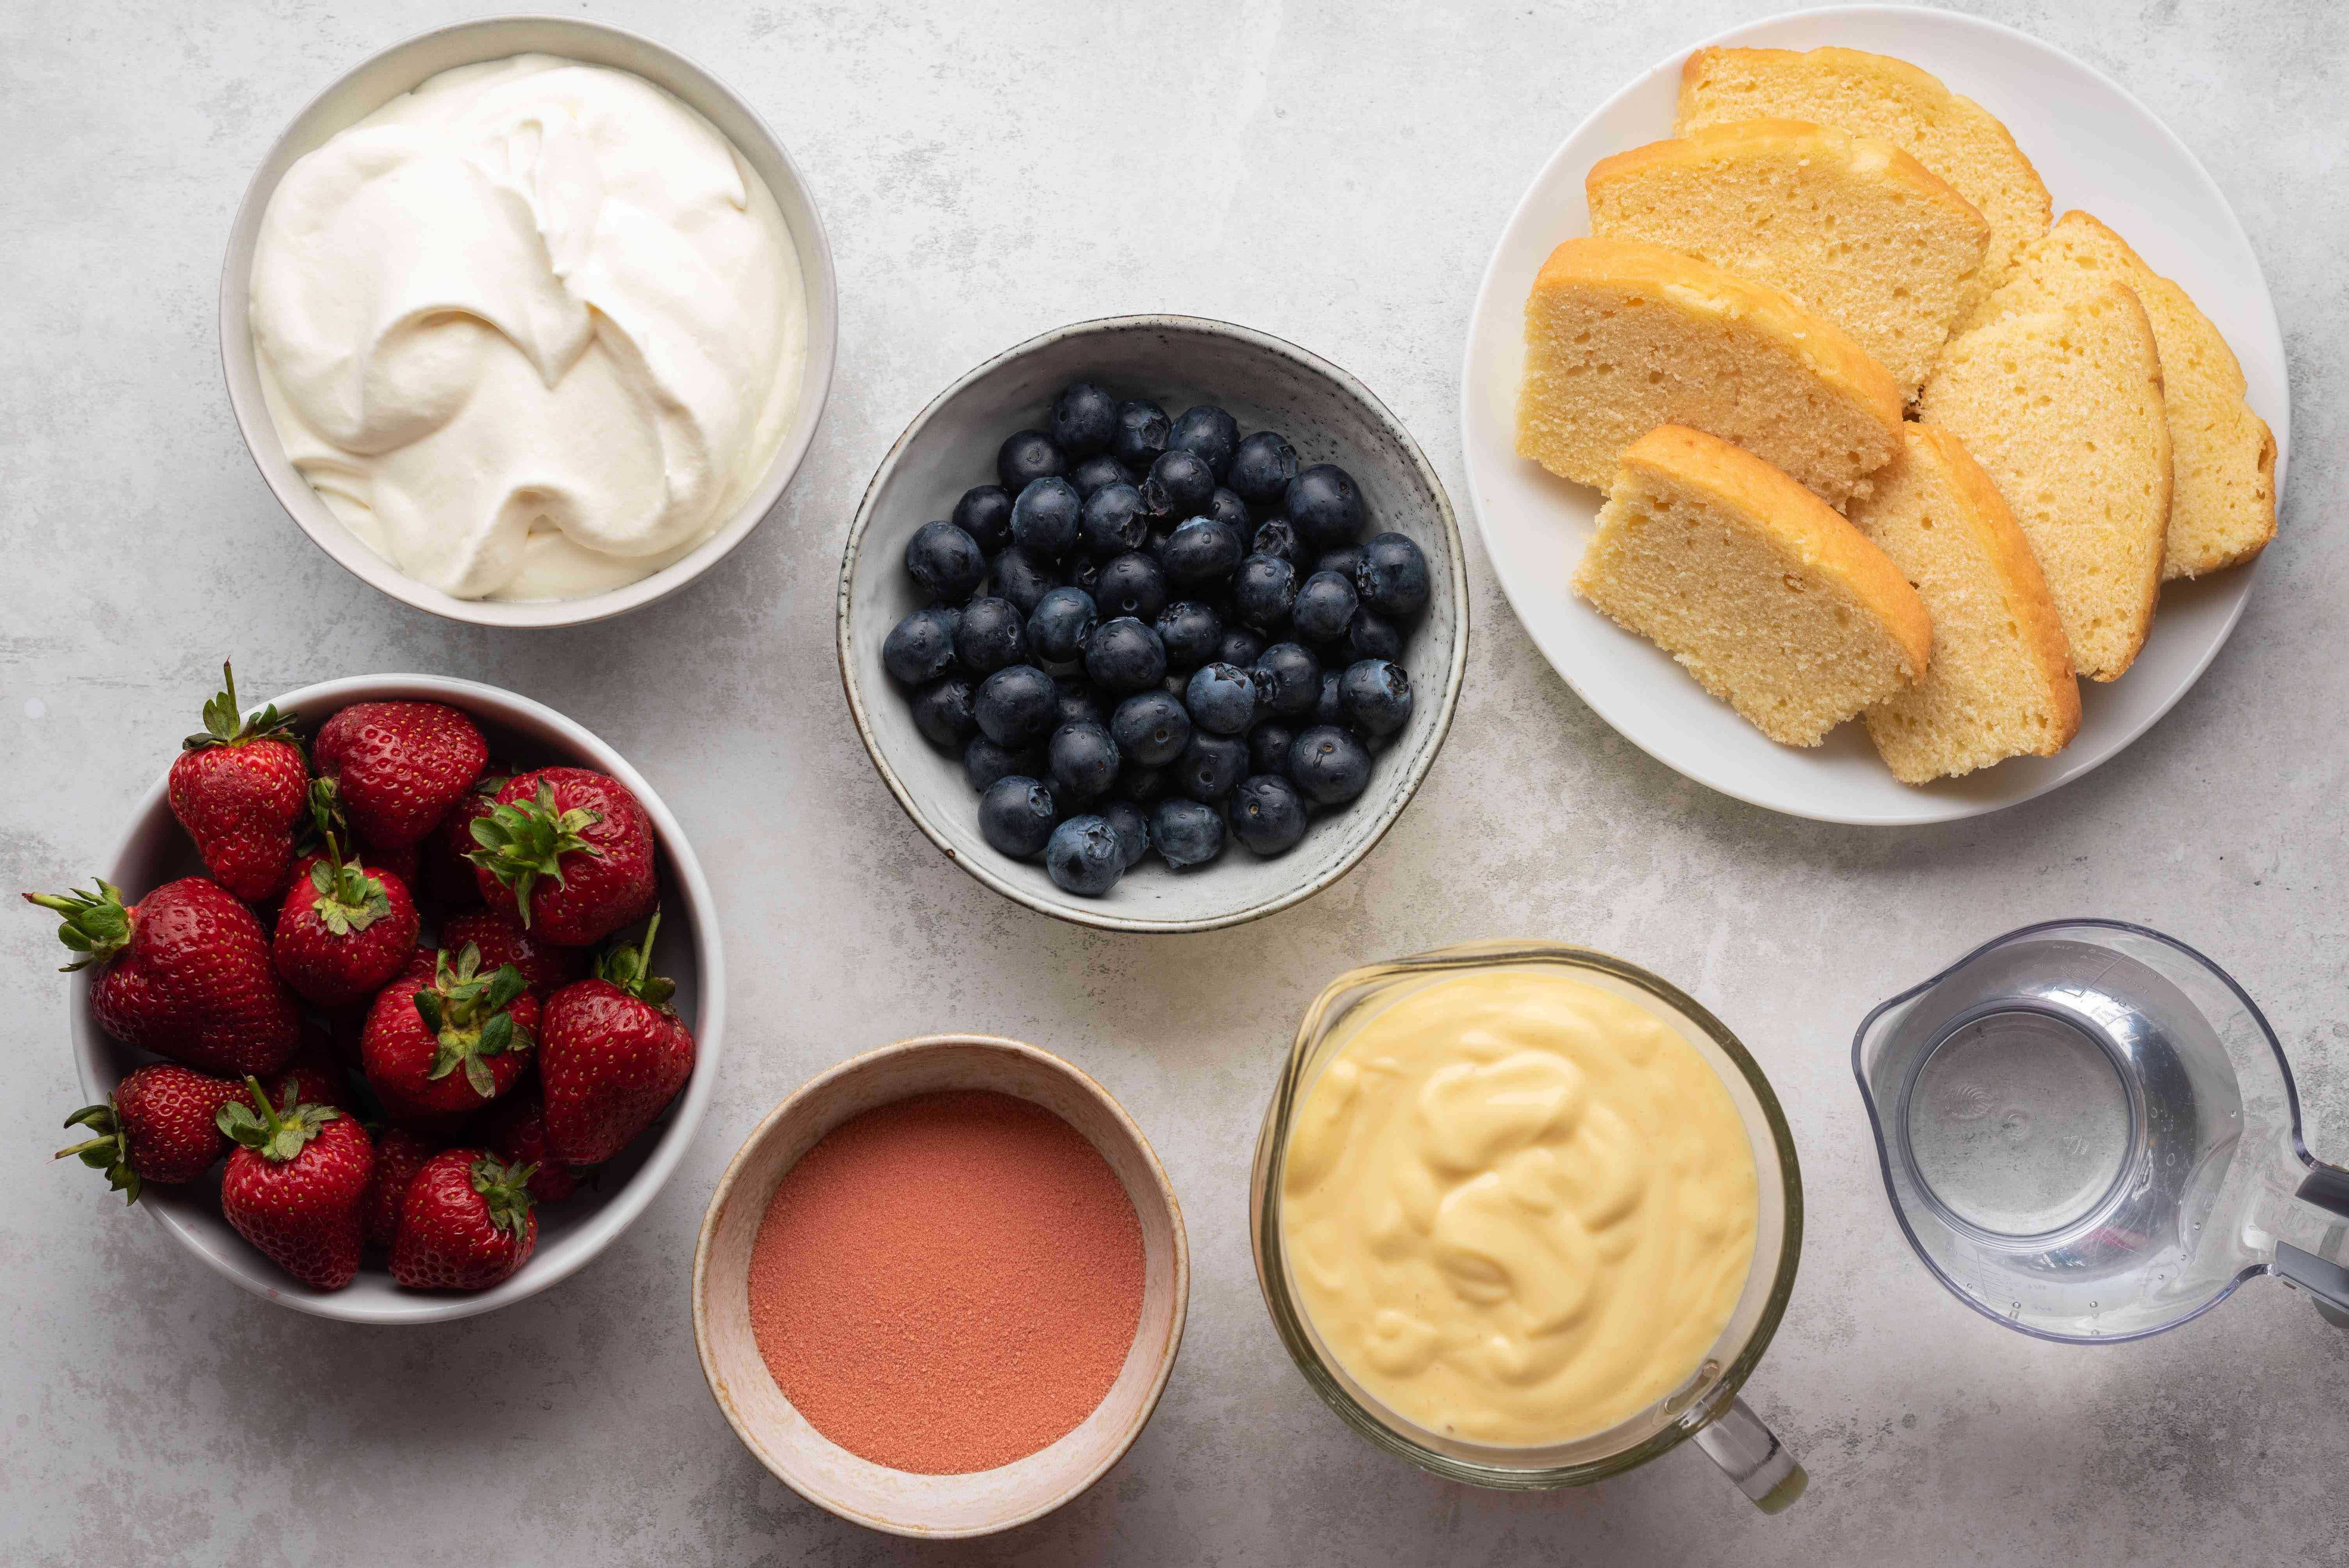 Classic Berry Trifle ingredients